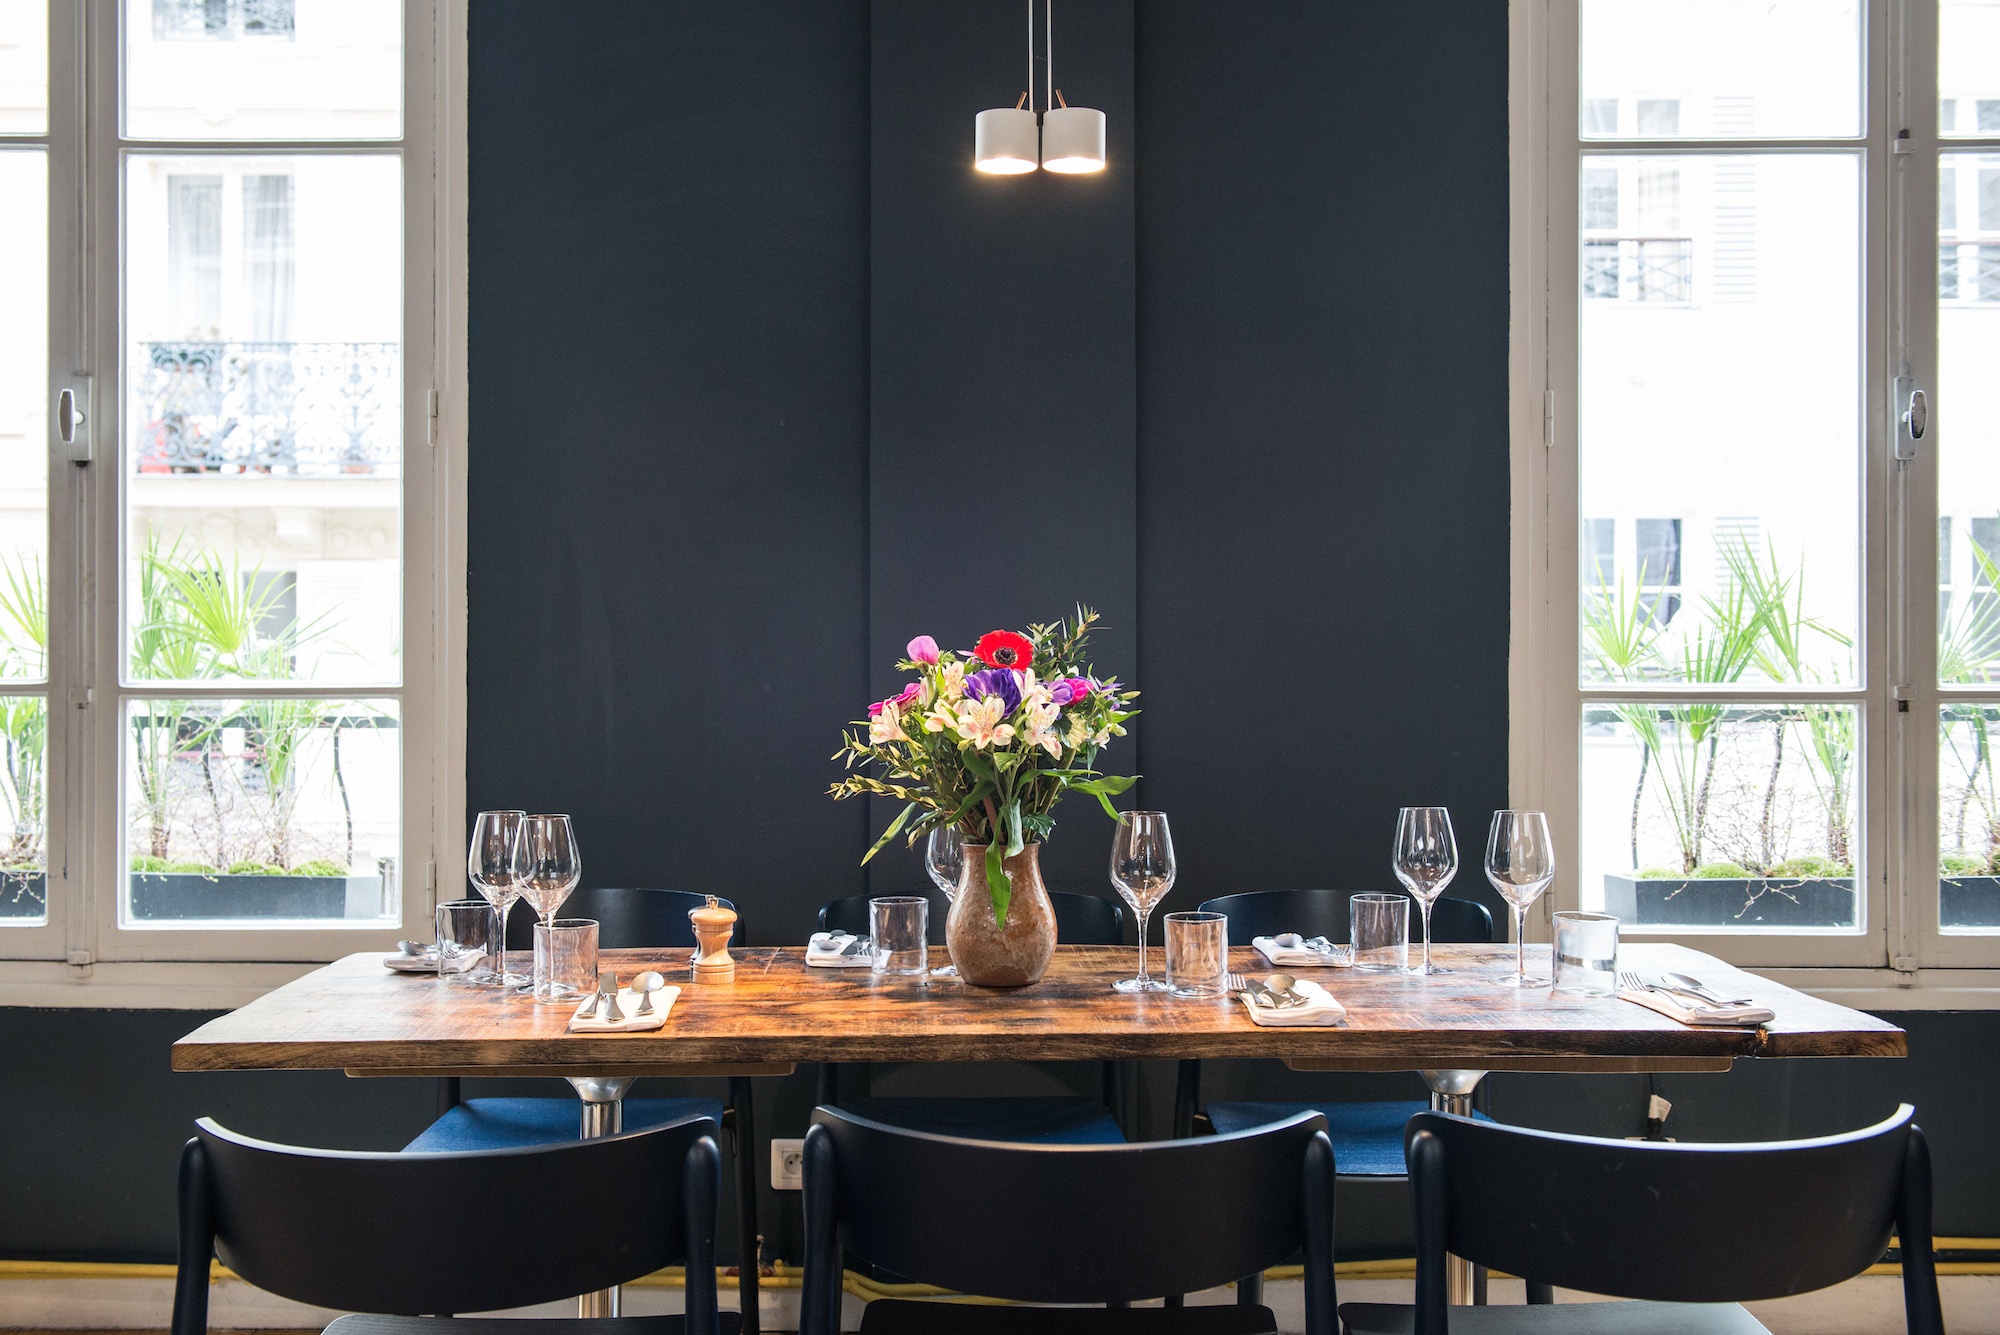 Belle Maison is the little sister of two other celebrated restaurants in the 9th arrondissement- Le Pantruche and Caillebotte- and it has quickly garnered a faithful following of its own, with diners who appreciate the small inventive menu and calming décor.